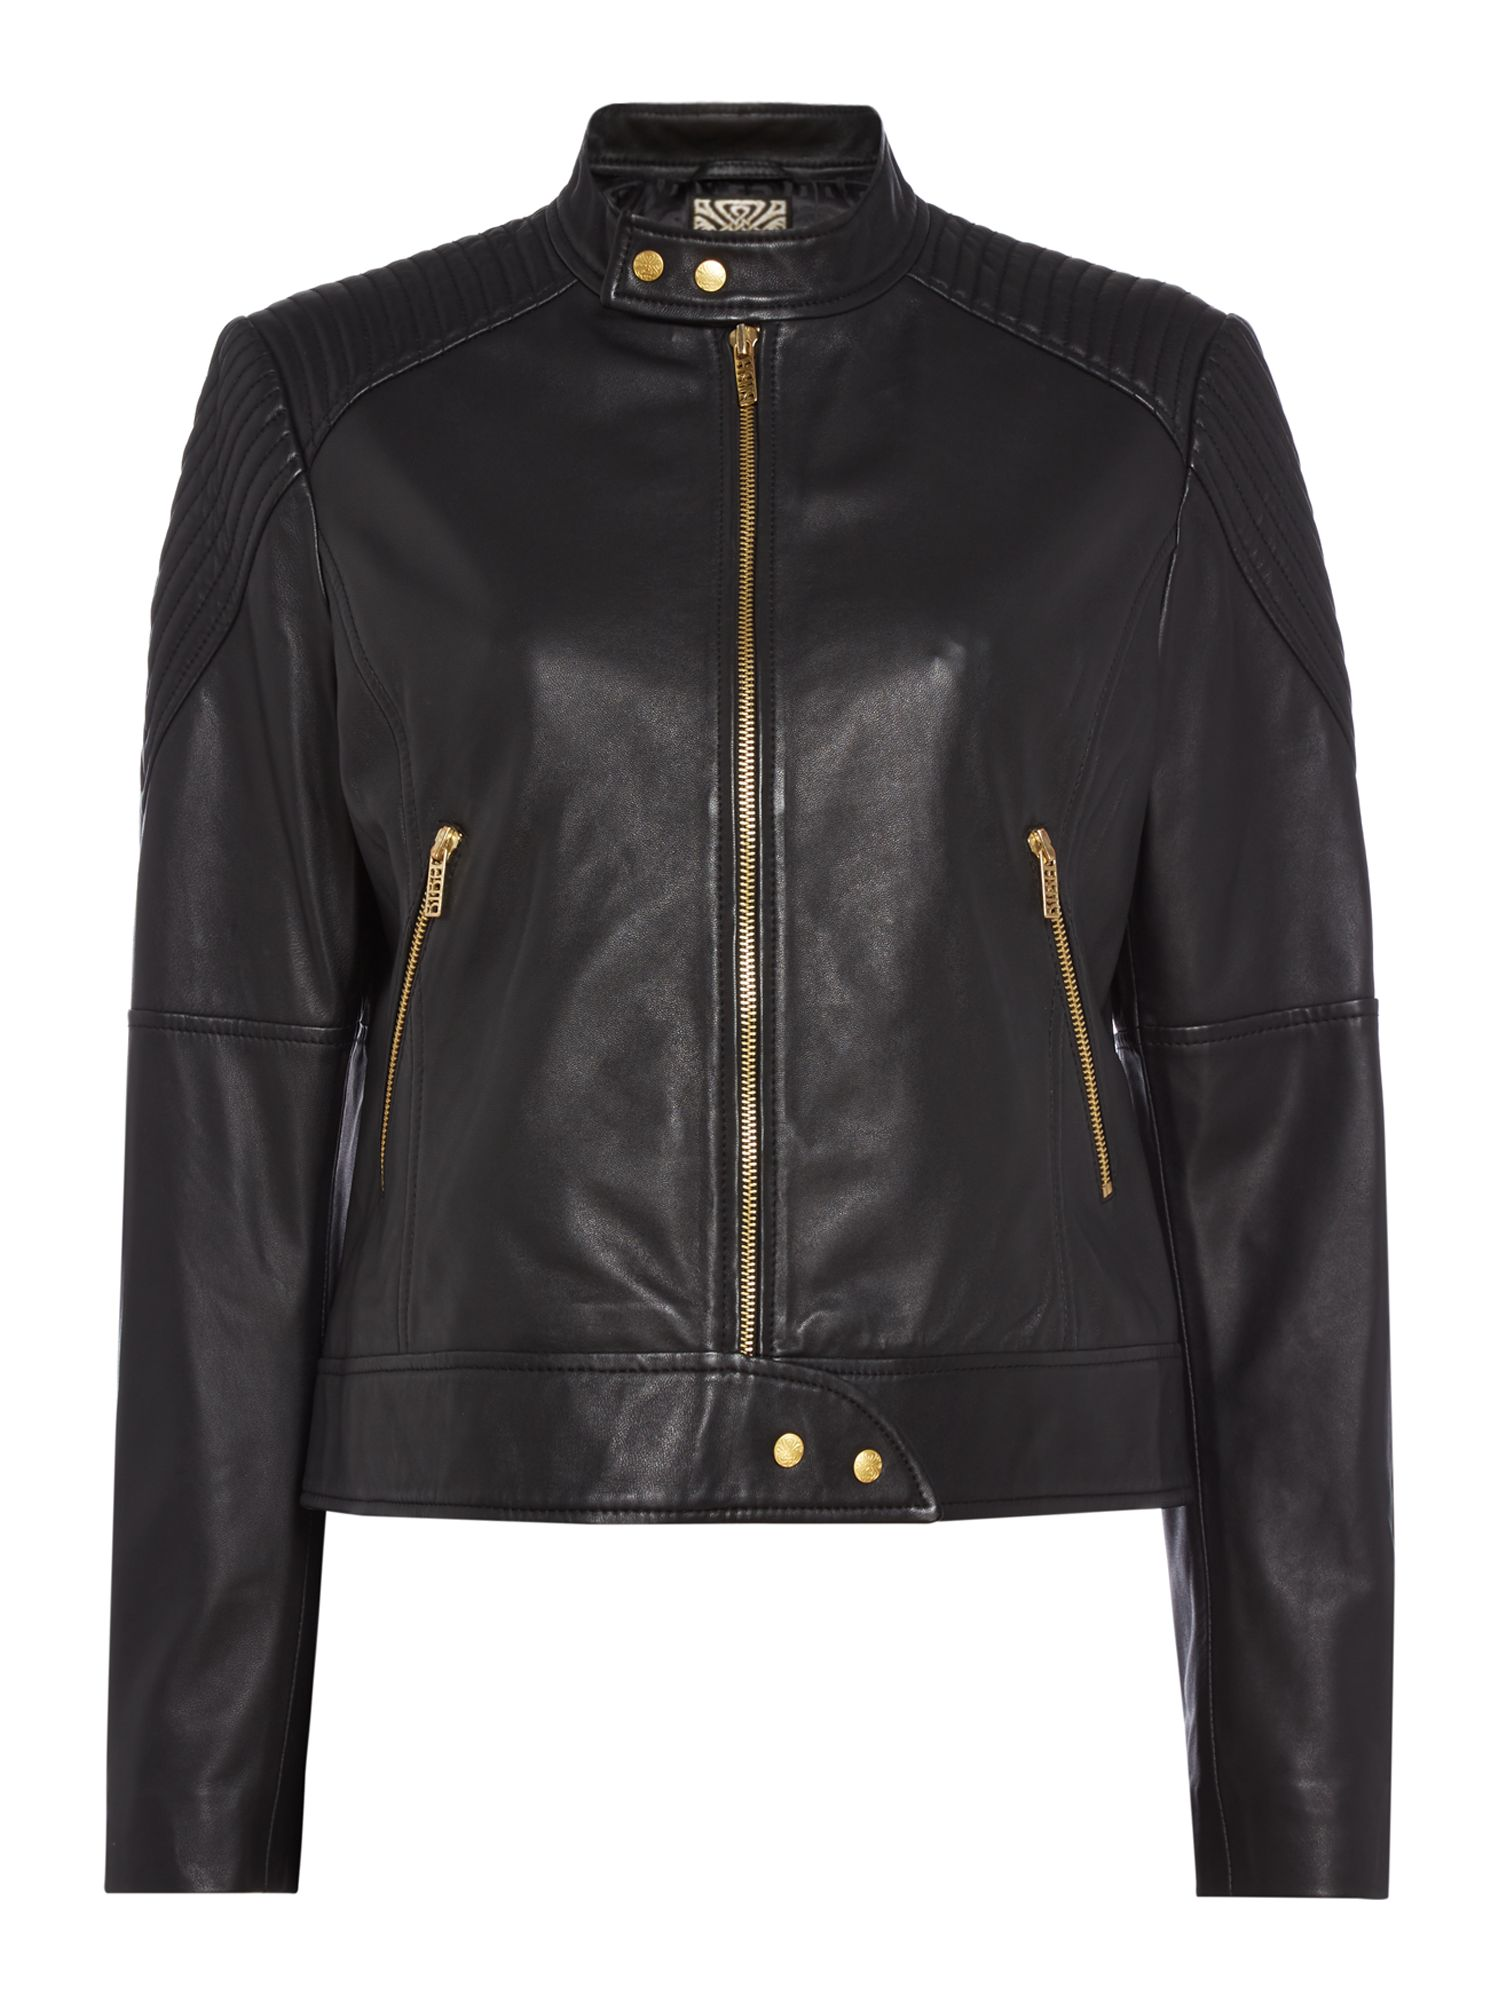 Biba Leather moto cross biker jacket, Black